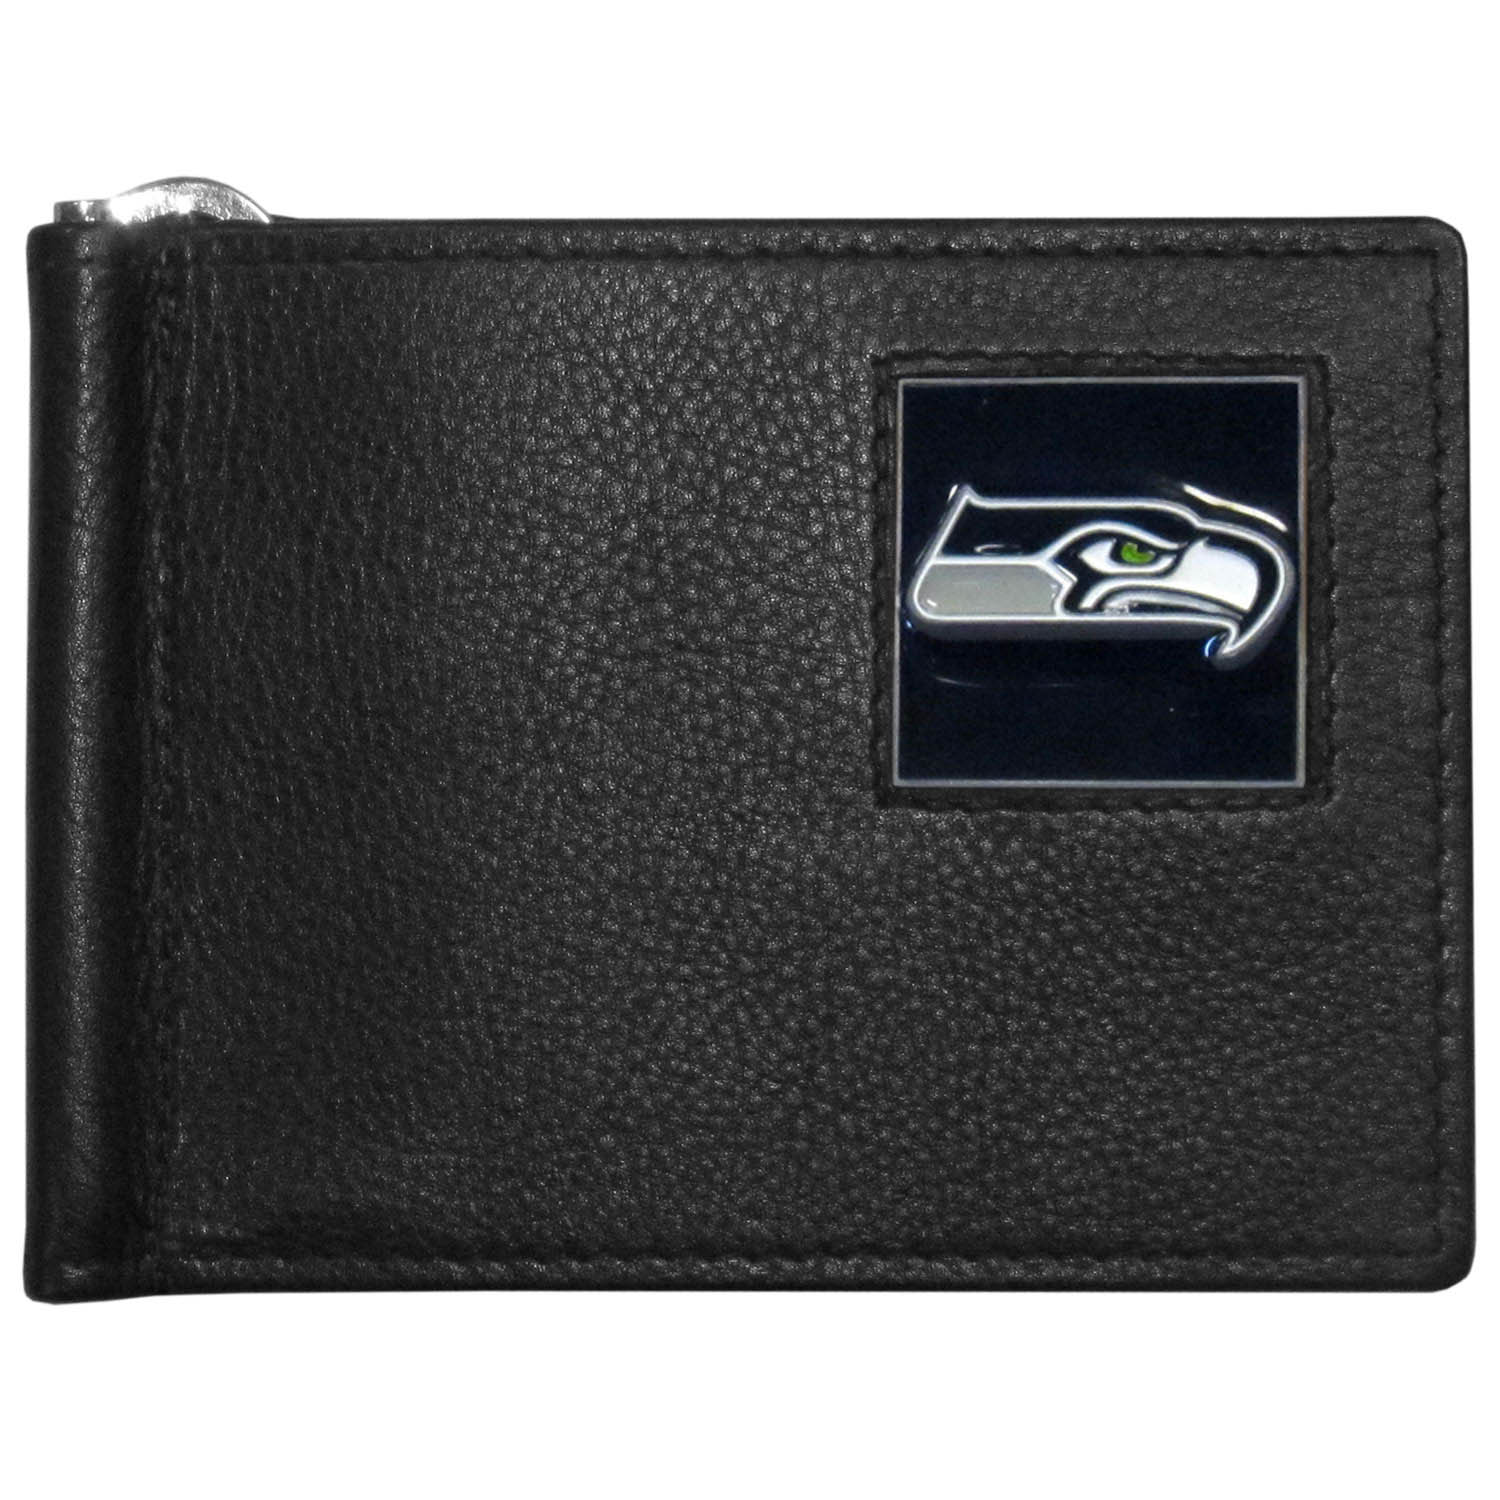 Seattle Seahawks Leather Bill Clip Wallet - This cool new style wallet features an inner, metal bill clip that lips up for easy access. The super slim wallet holds tons of stuff with ample pockets, credit card slots & windowed ID slot.  The wallet is made of genuine fine grain leather and it finished with a metal Seattle Seahawks emblem. The wallet is shipped in gift box packaging.